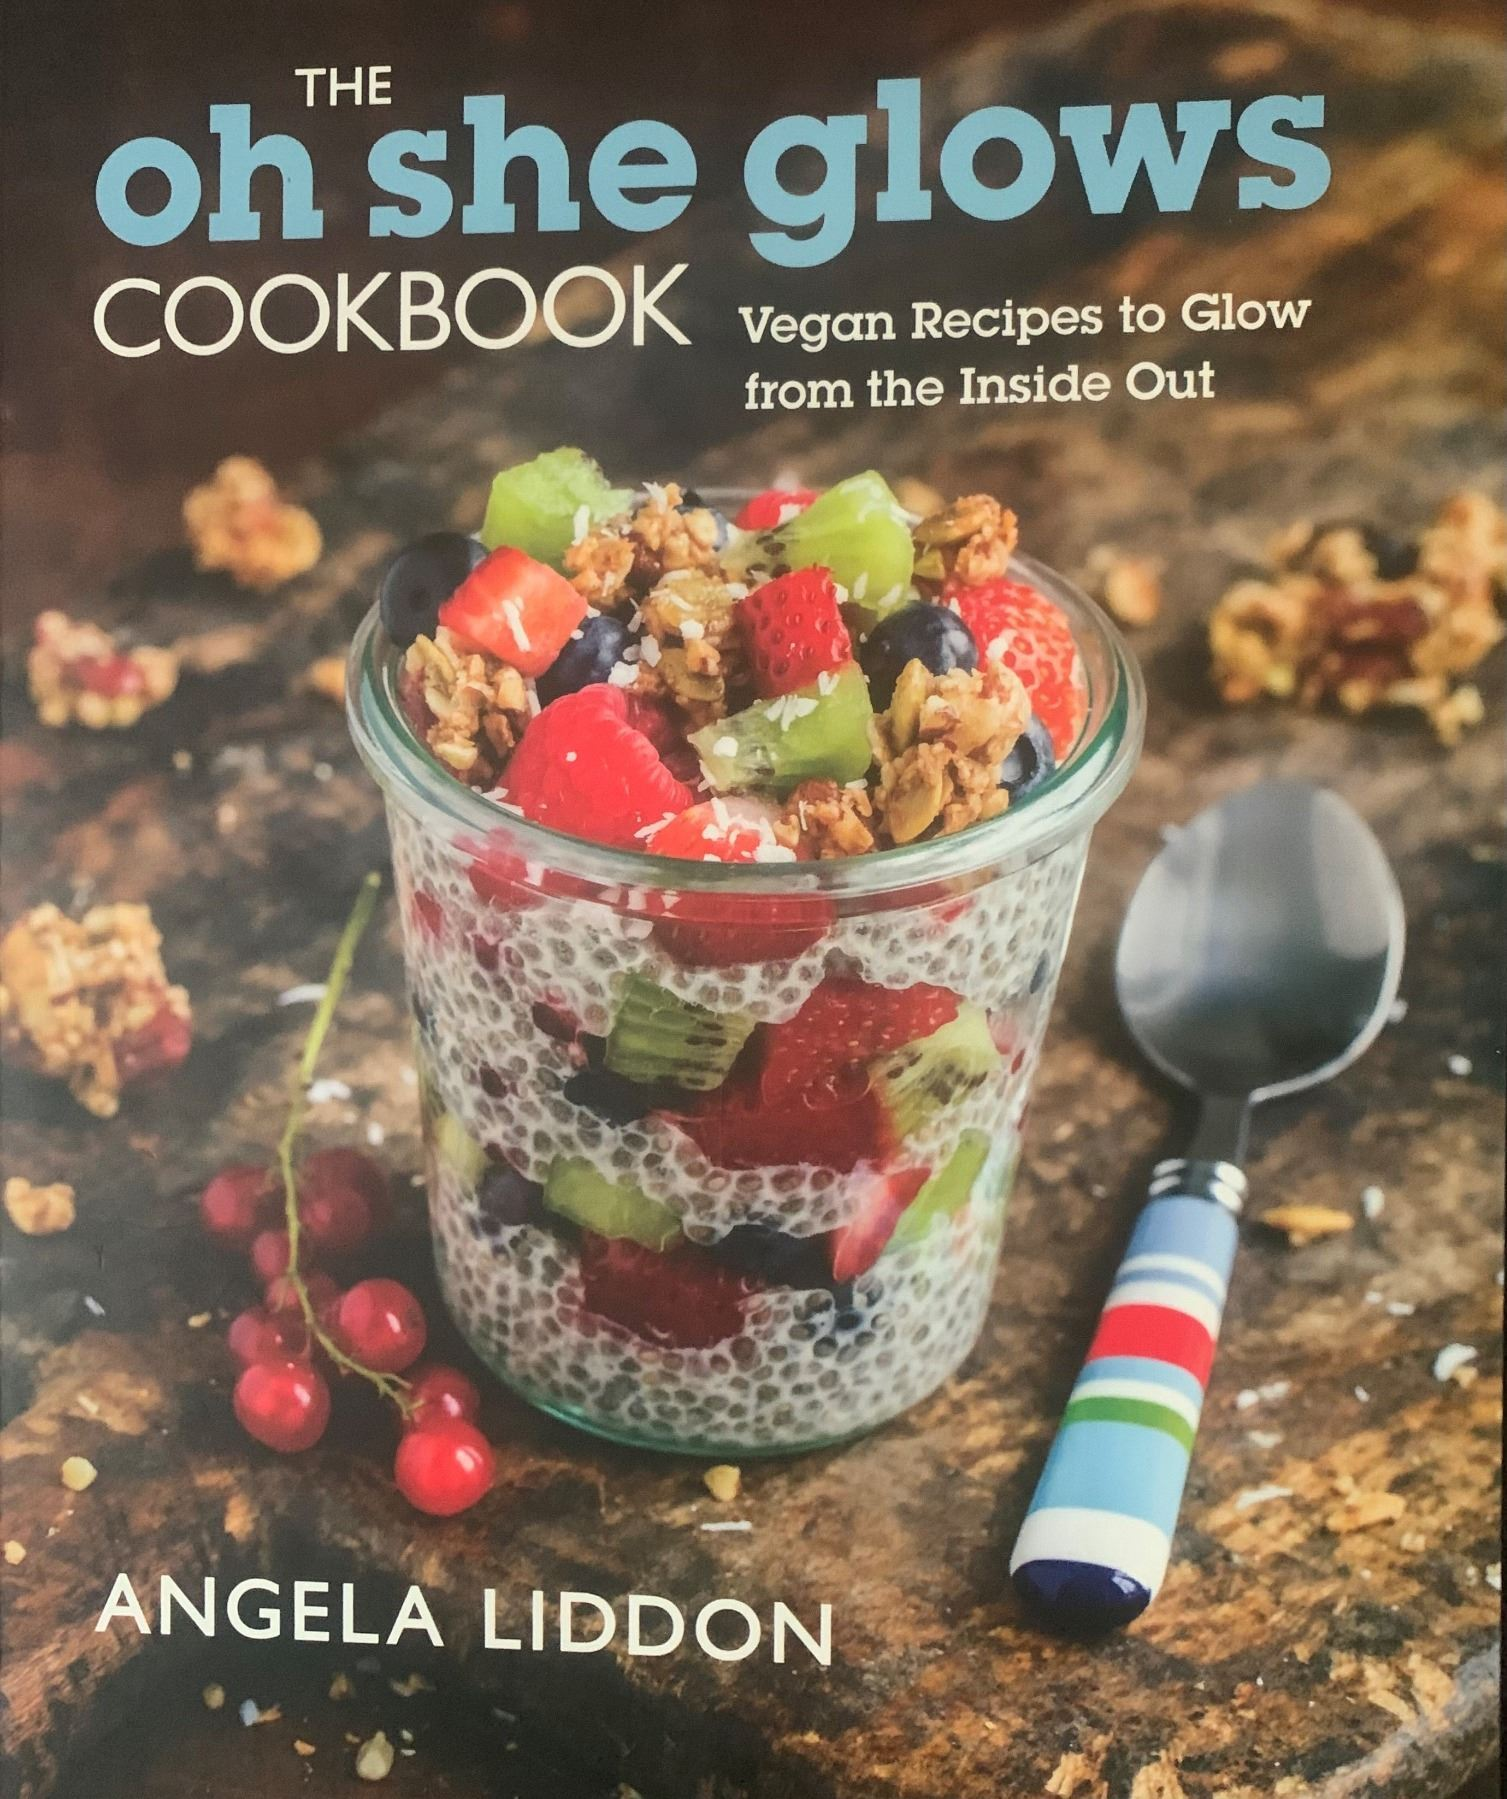 Oh She Glows! Cookbook - Athabasca, AB